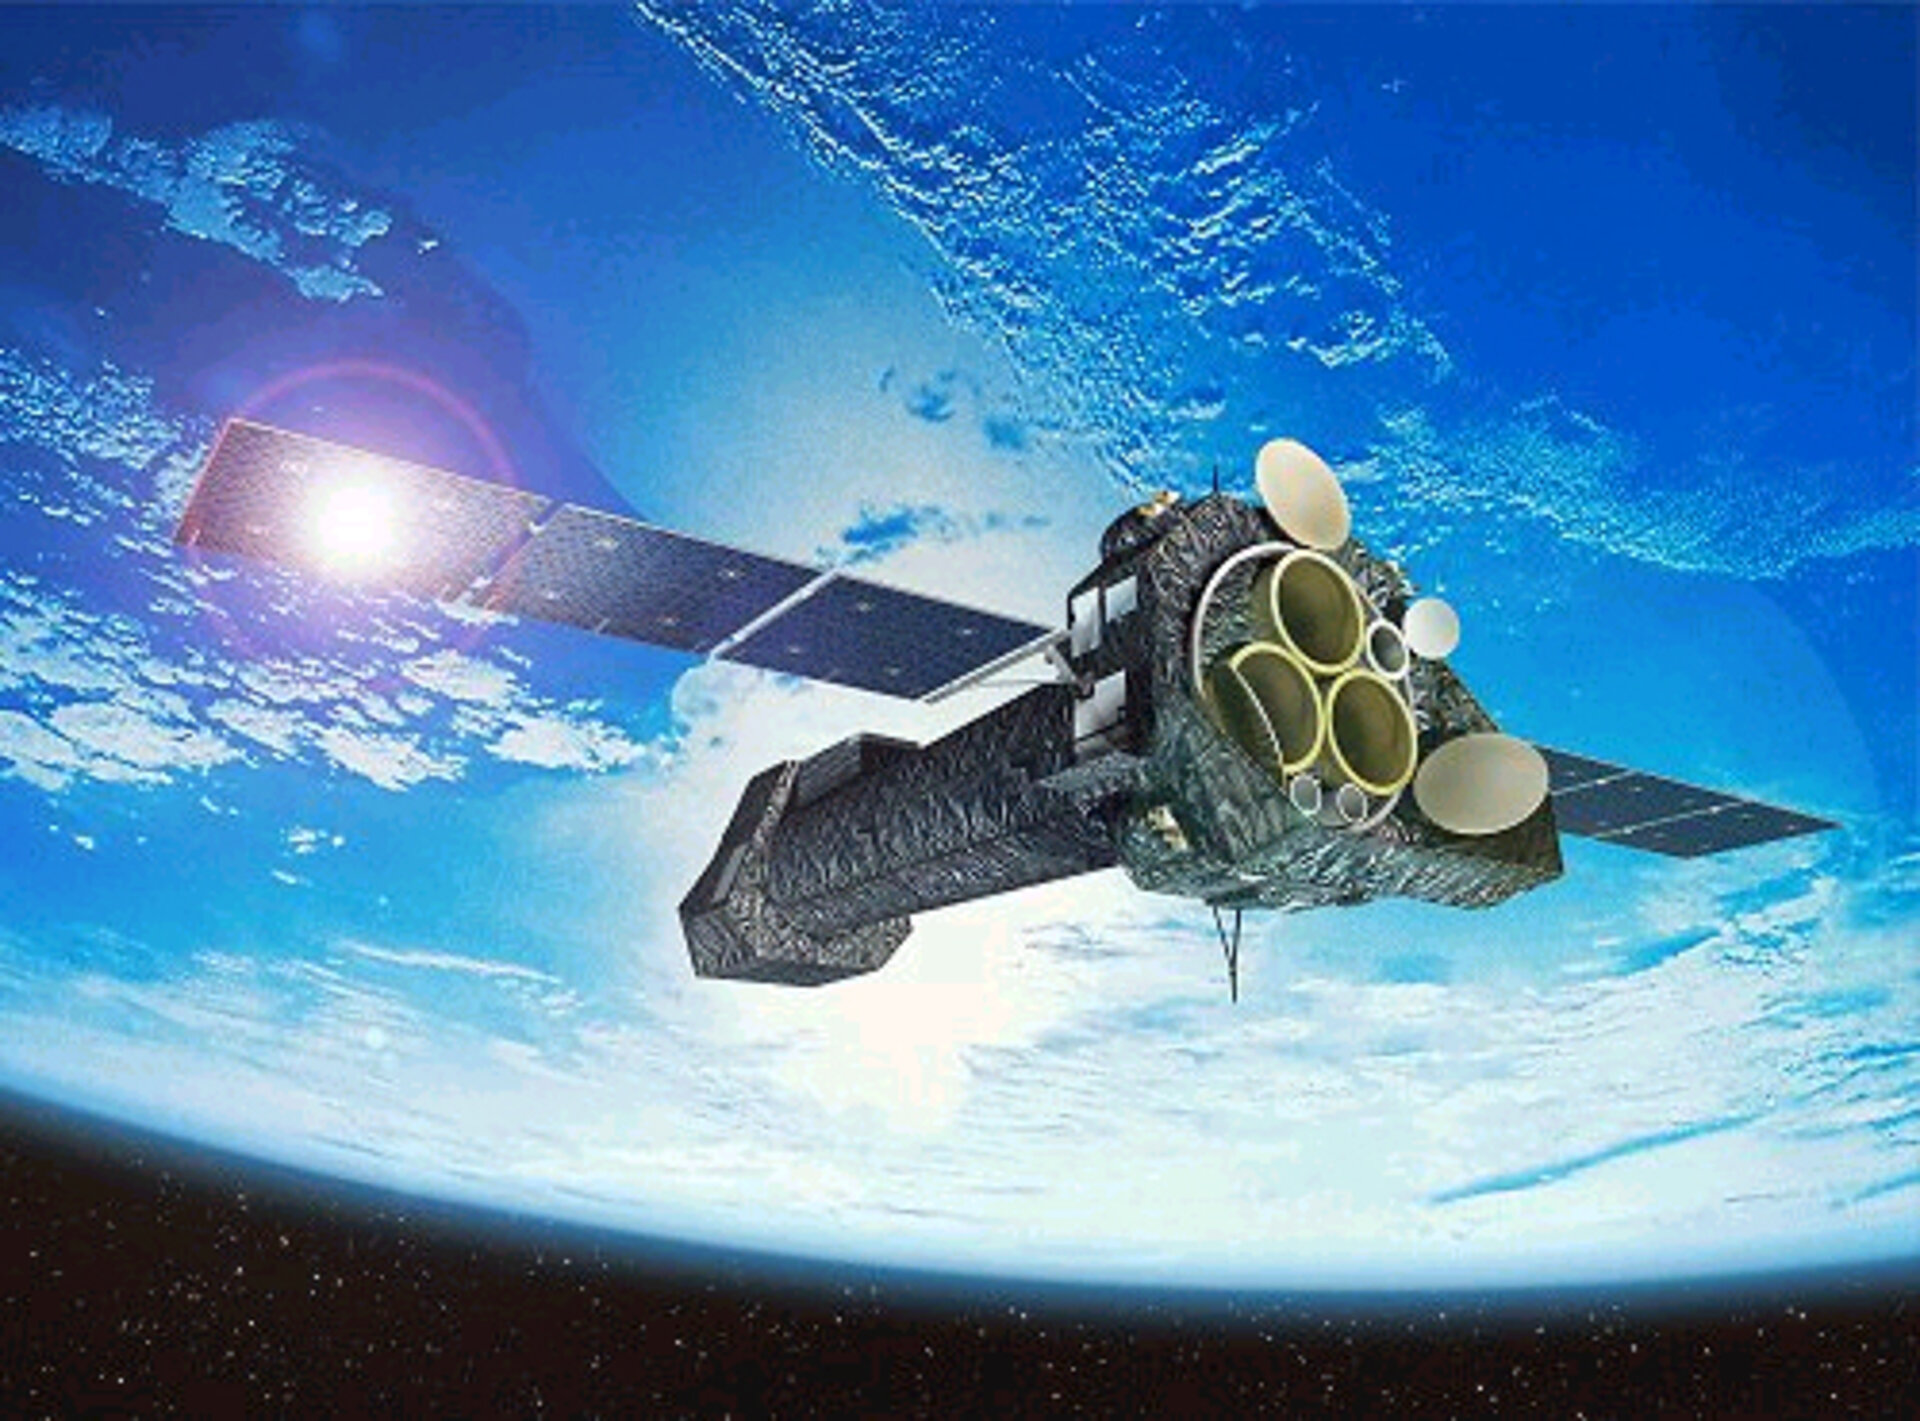 XMM-Newton spacecraft